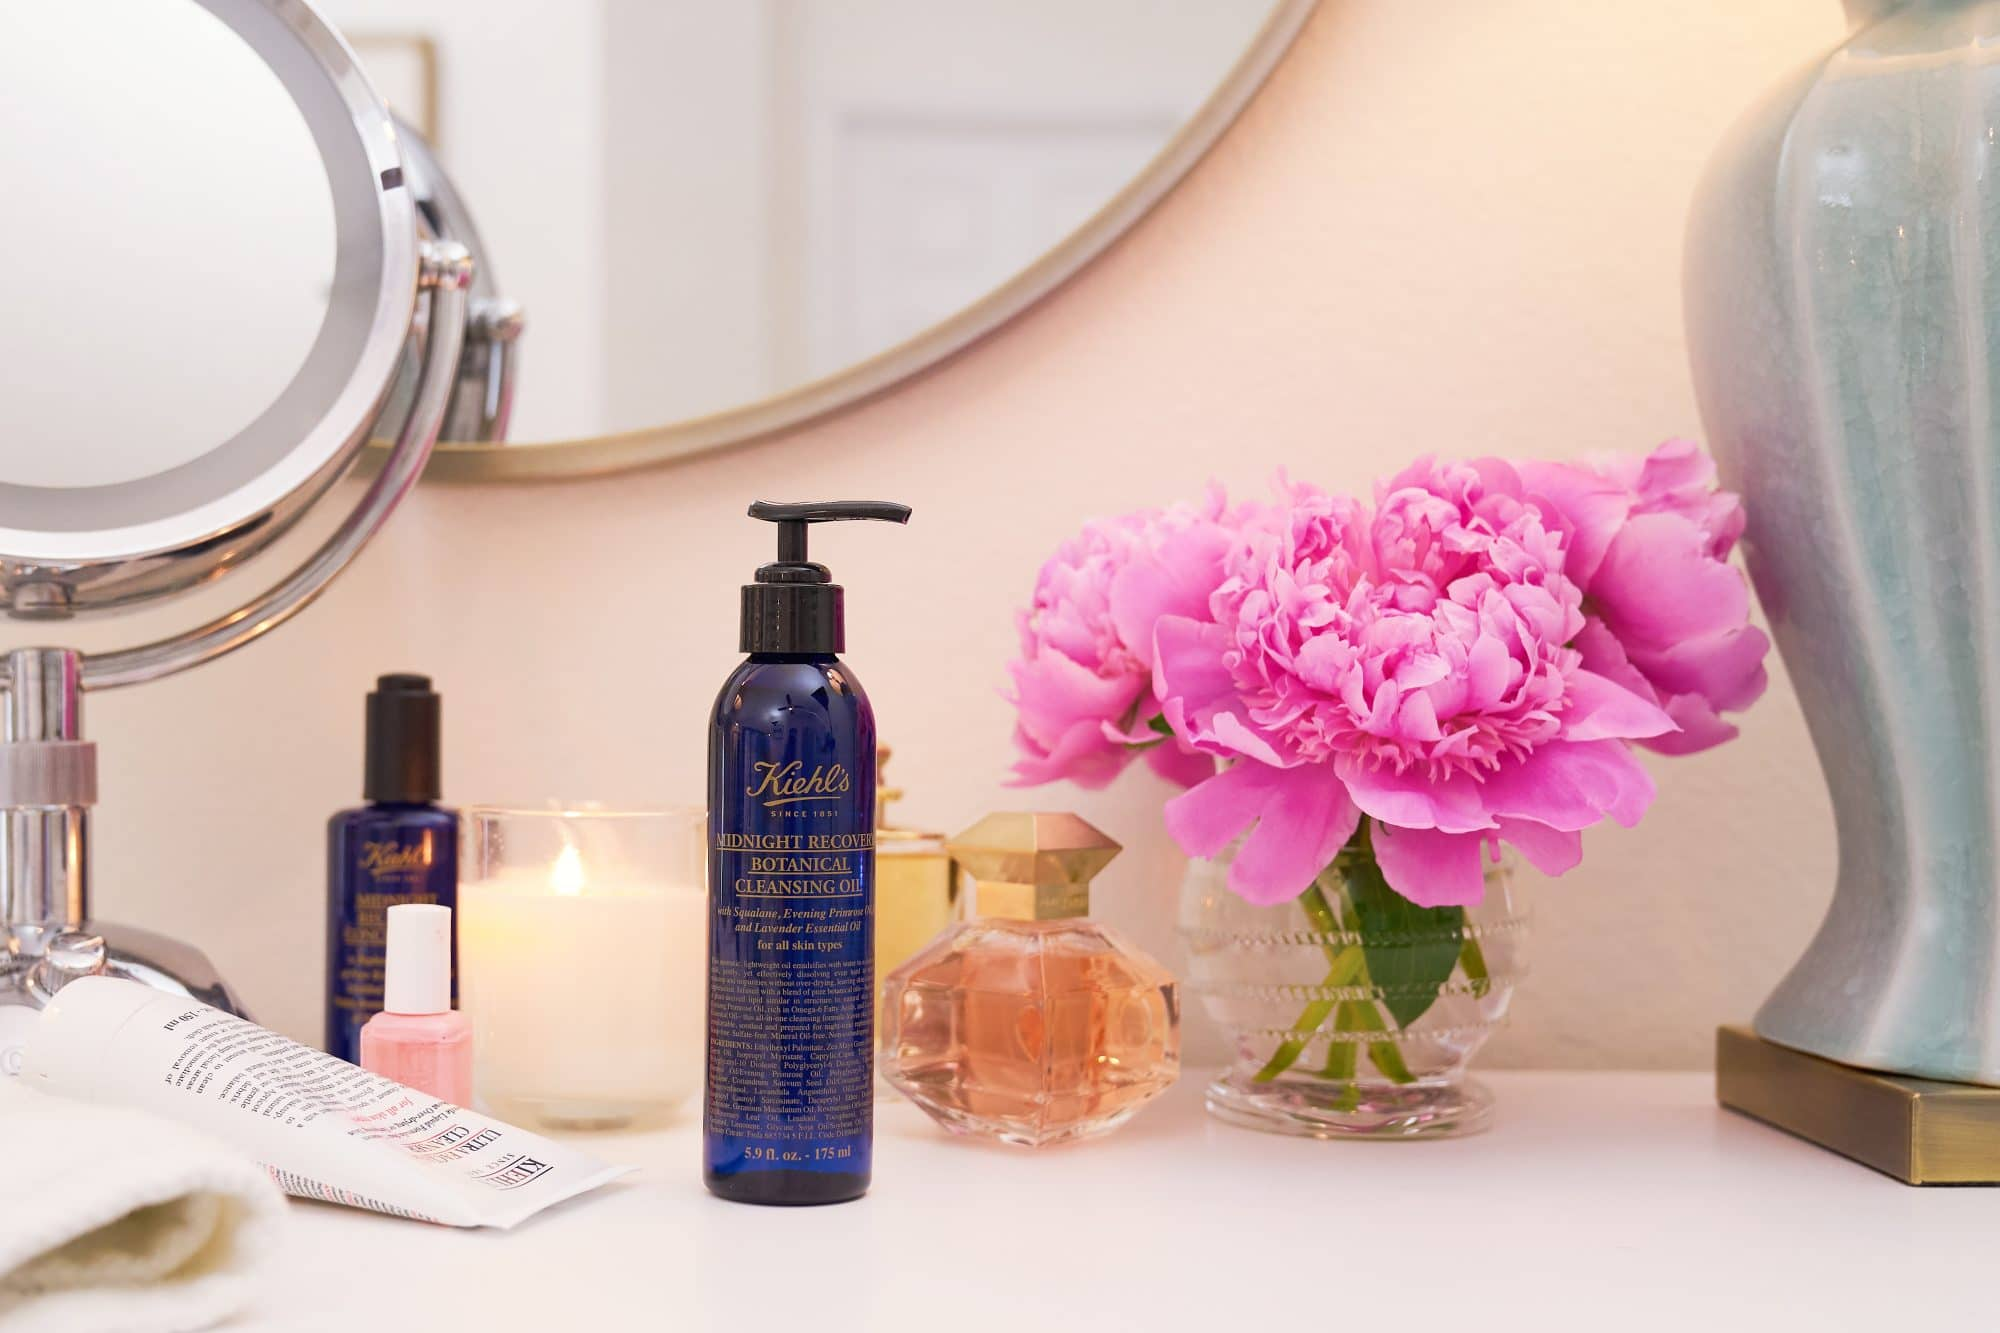 Nighttime Routine for Glowing Skin | www.ashleybrookedesigns.com